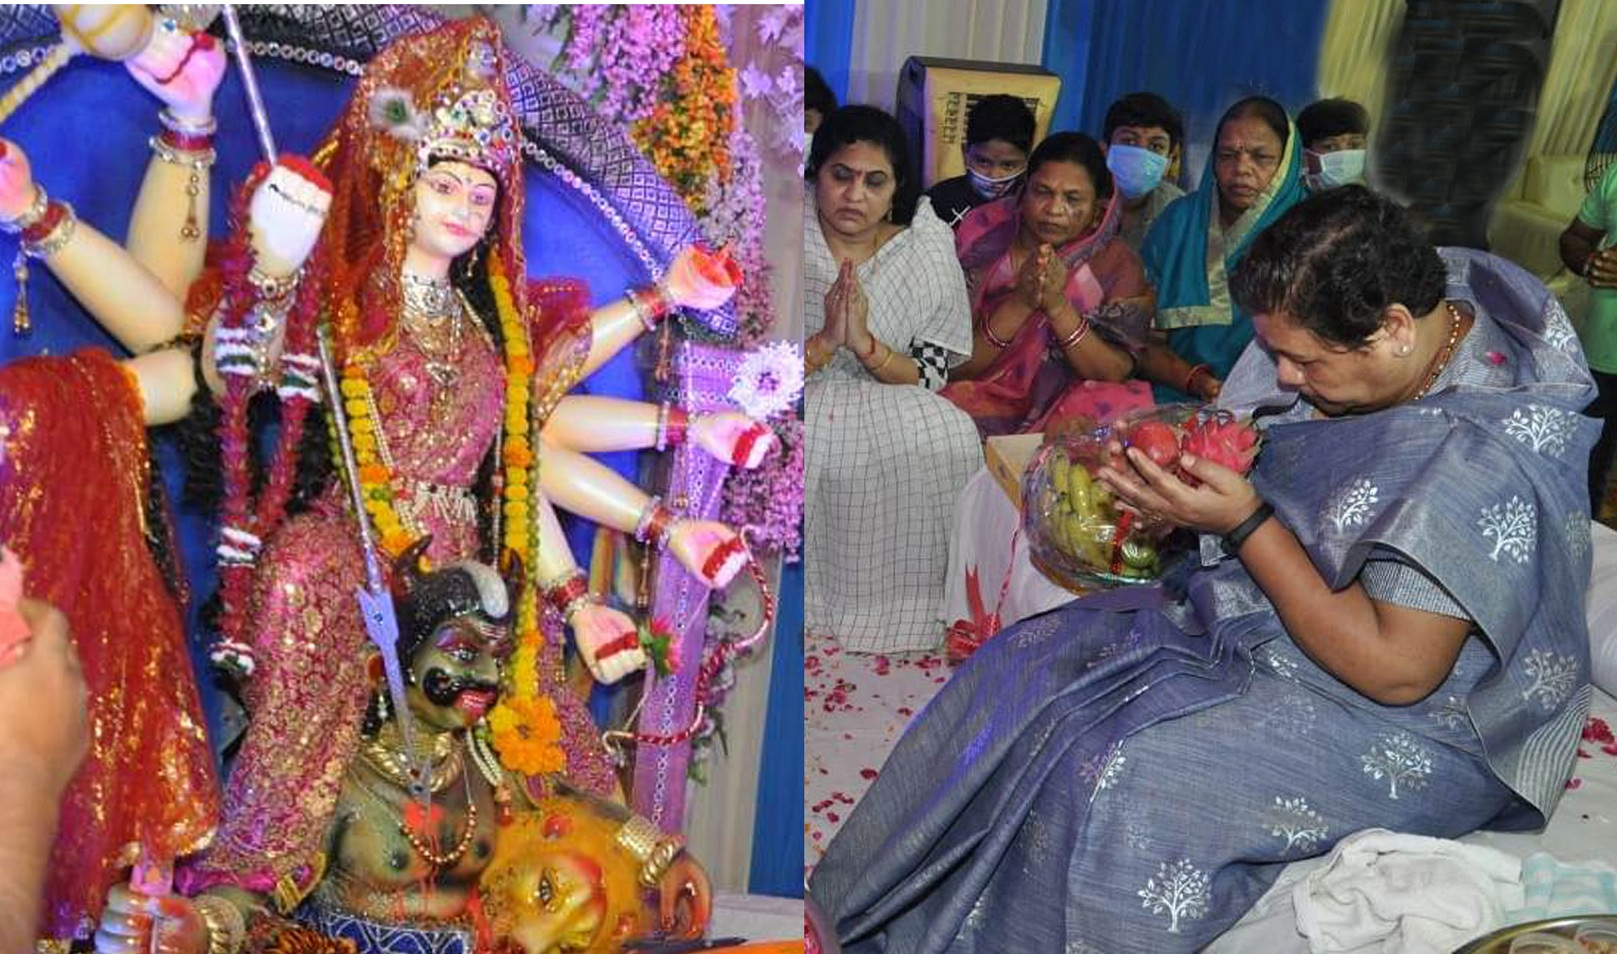 Governor involved in Durga Puja